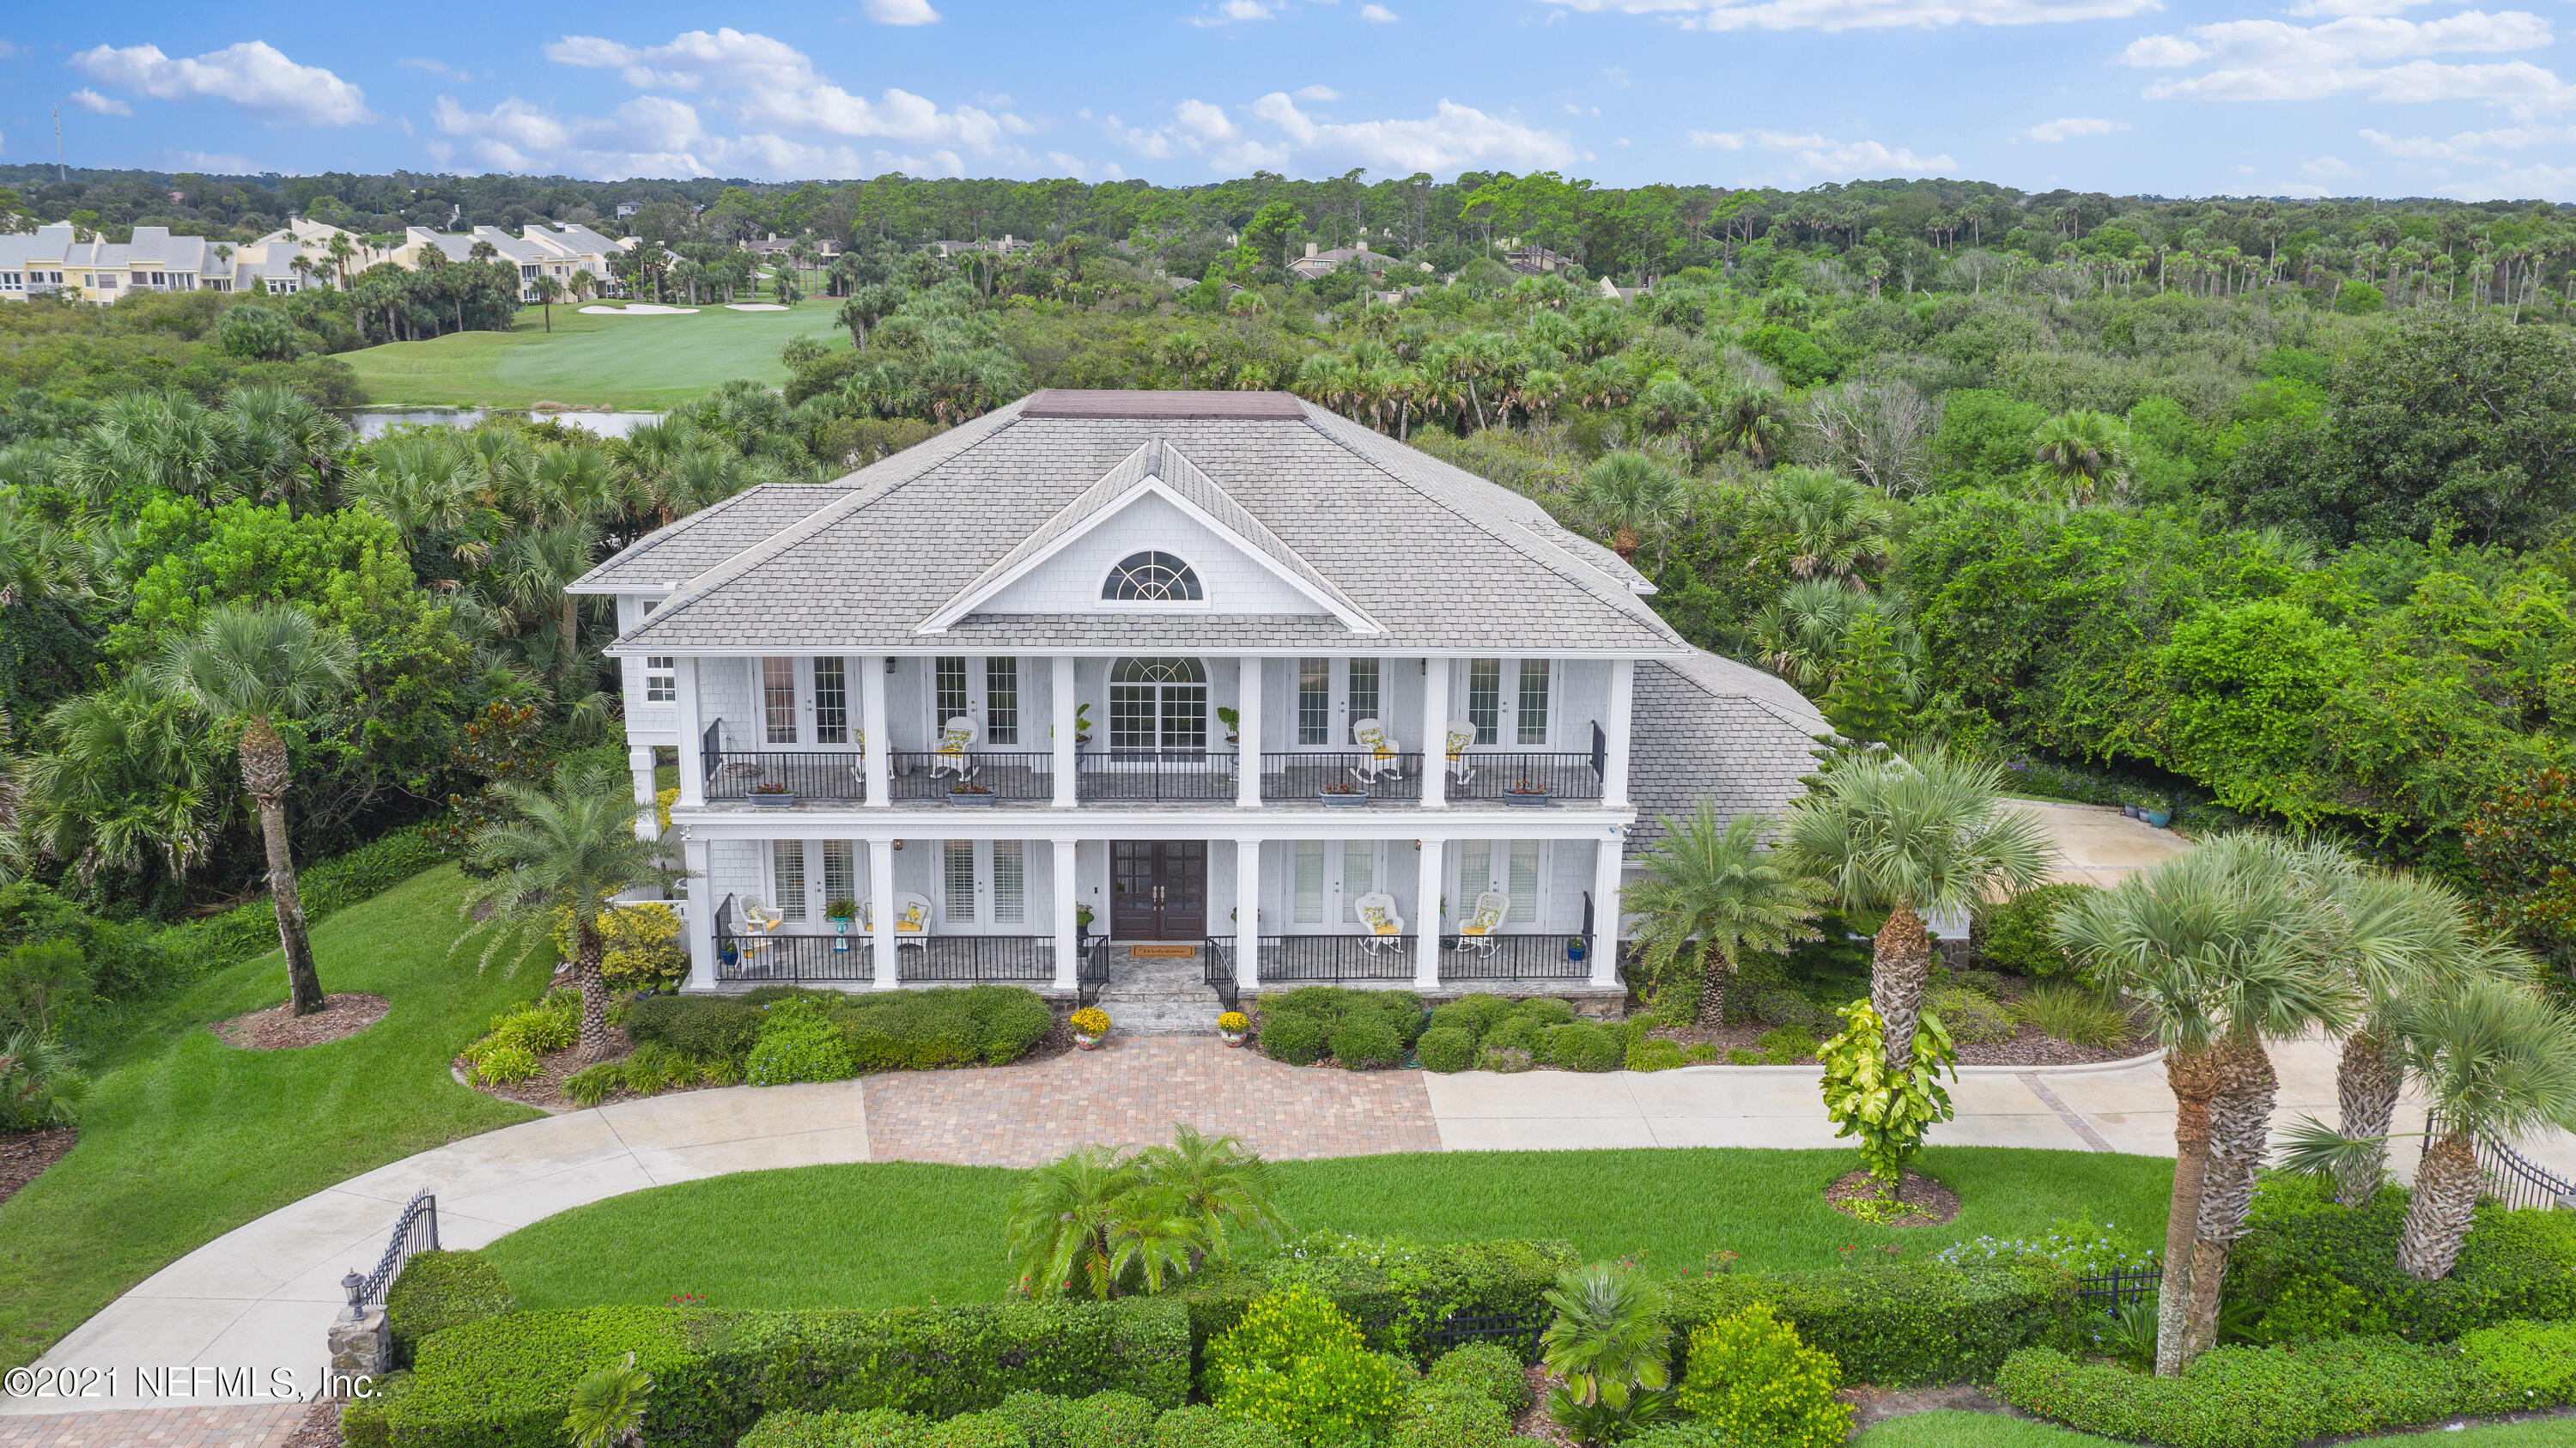 Gorgeous custom home built by Charles Collier with quality construction and top of the line finishes!  French Colonial design with living areas and primary bd suite upstairs taking full advantage of the ocean, Guana & golf course views! First floor offers two private bedroom suites, office plus a flex space that could be a family room, game room or 4th bedroom with full bath, laundry and elevator and over 1,000 sq ft garage & circular drive with gated entry! Custom woodwork throughout, spacious rooms, smooth ceilings, Carrara gold marble, top of the line appliances, wood floors and winding staircase are only a few of the high end finishes.  Four covered porches offer amazing views and relaxing entertaining spaces.  Immaculately maintained  - must see to truly appreciate the quality here!